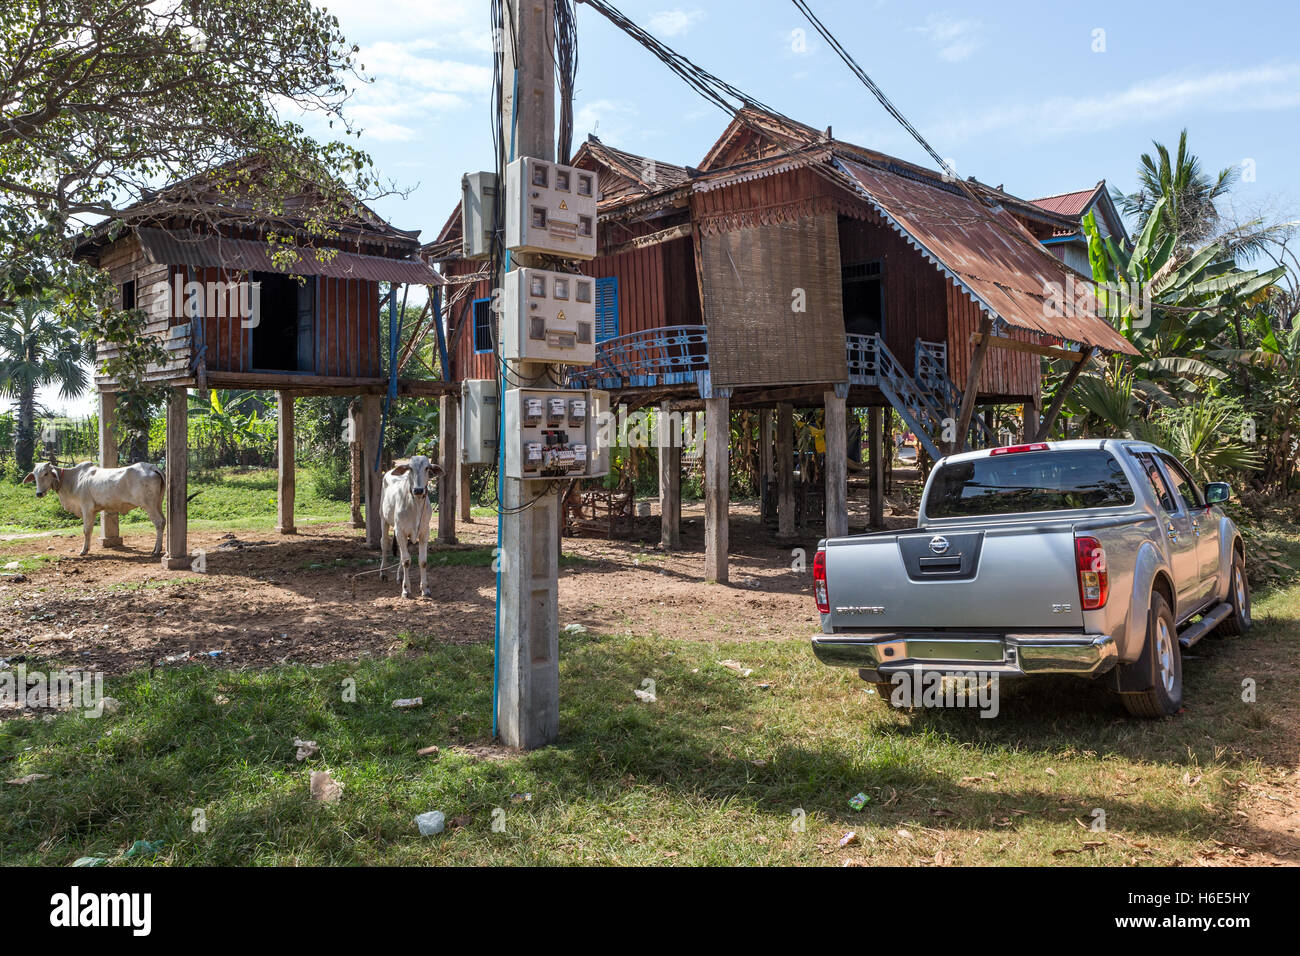 Traditional stilted wooden homes + ox + car, Village, Cambodia Stock Photo